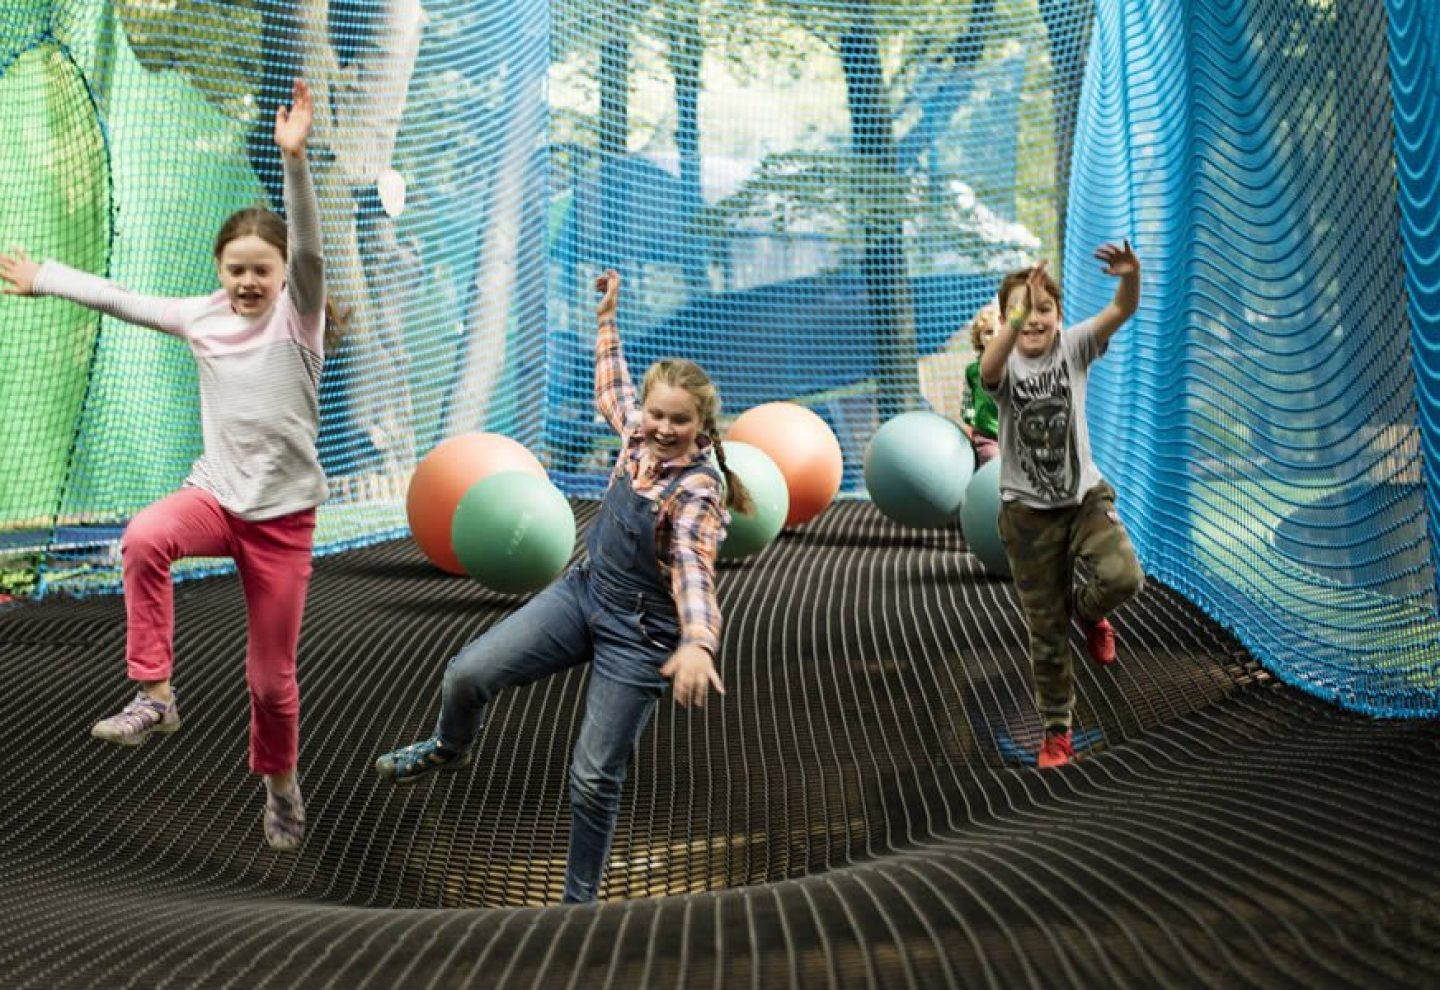 Things to do with kids in the Lake District